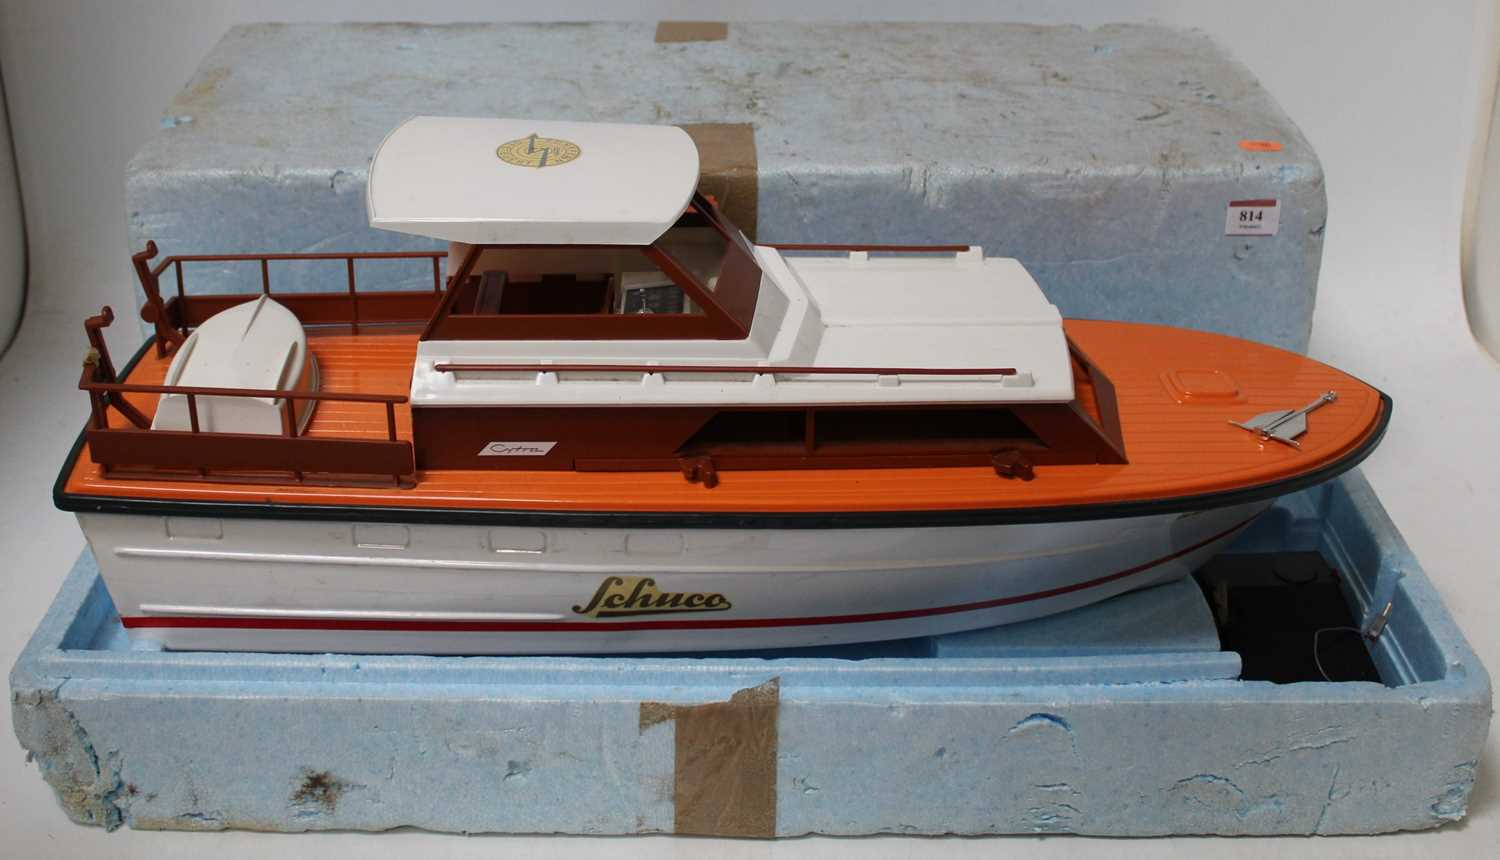 A Schuco No. 763 Cytra Ambassador 38 yacht comprising of plastic white and red hull with Schuco